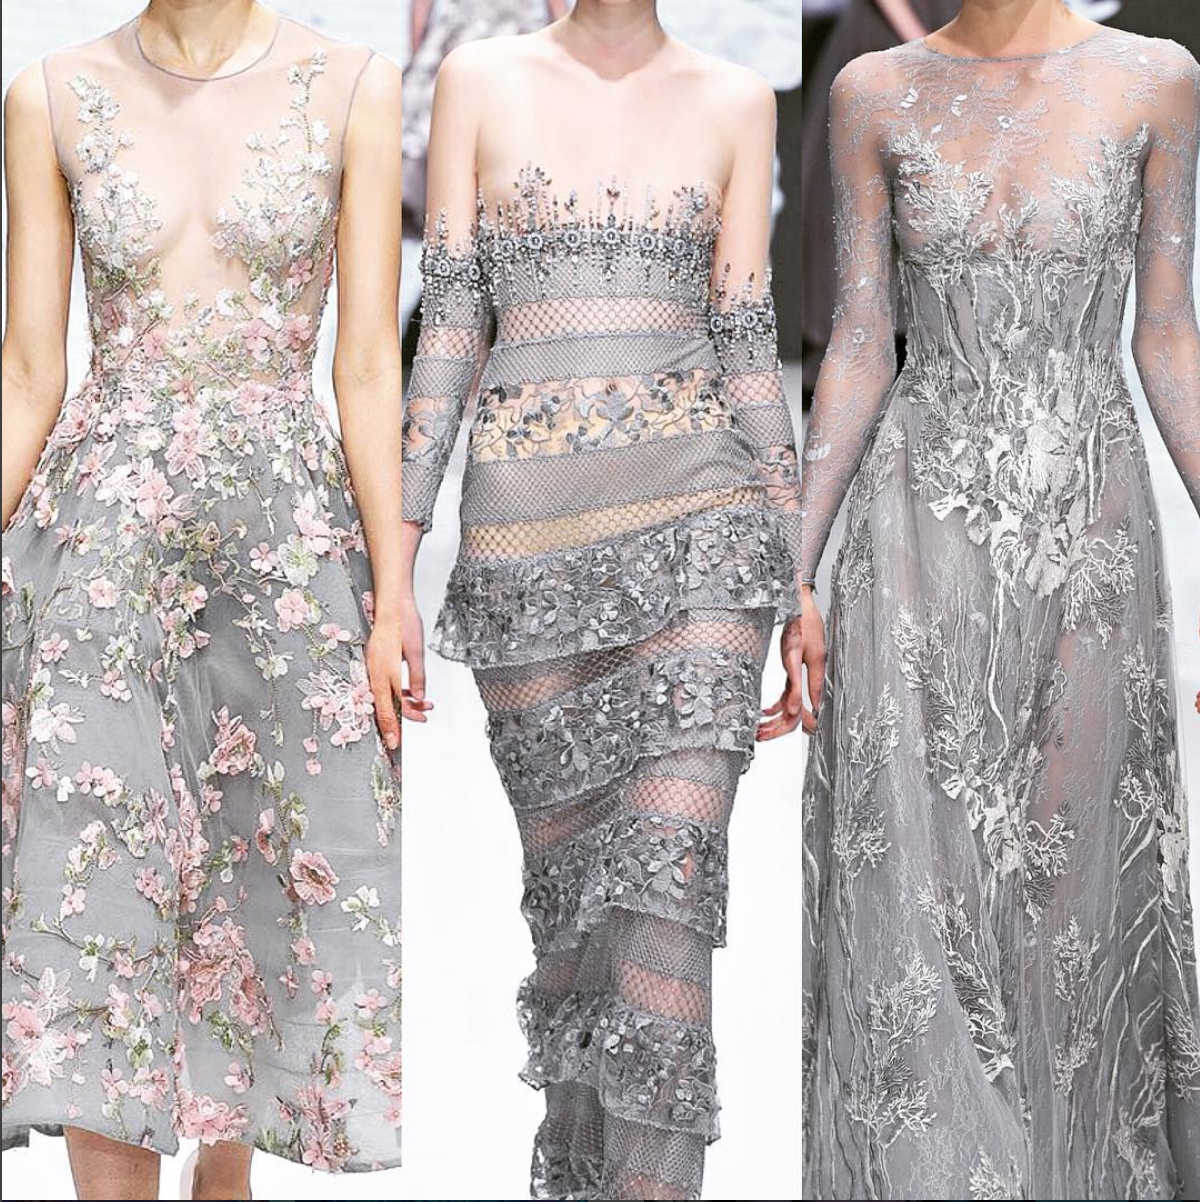 Best dress to wear to a garden wedding  That Michael Cinco dress on the left but with more coverage is a